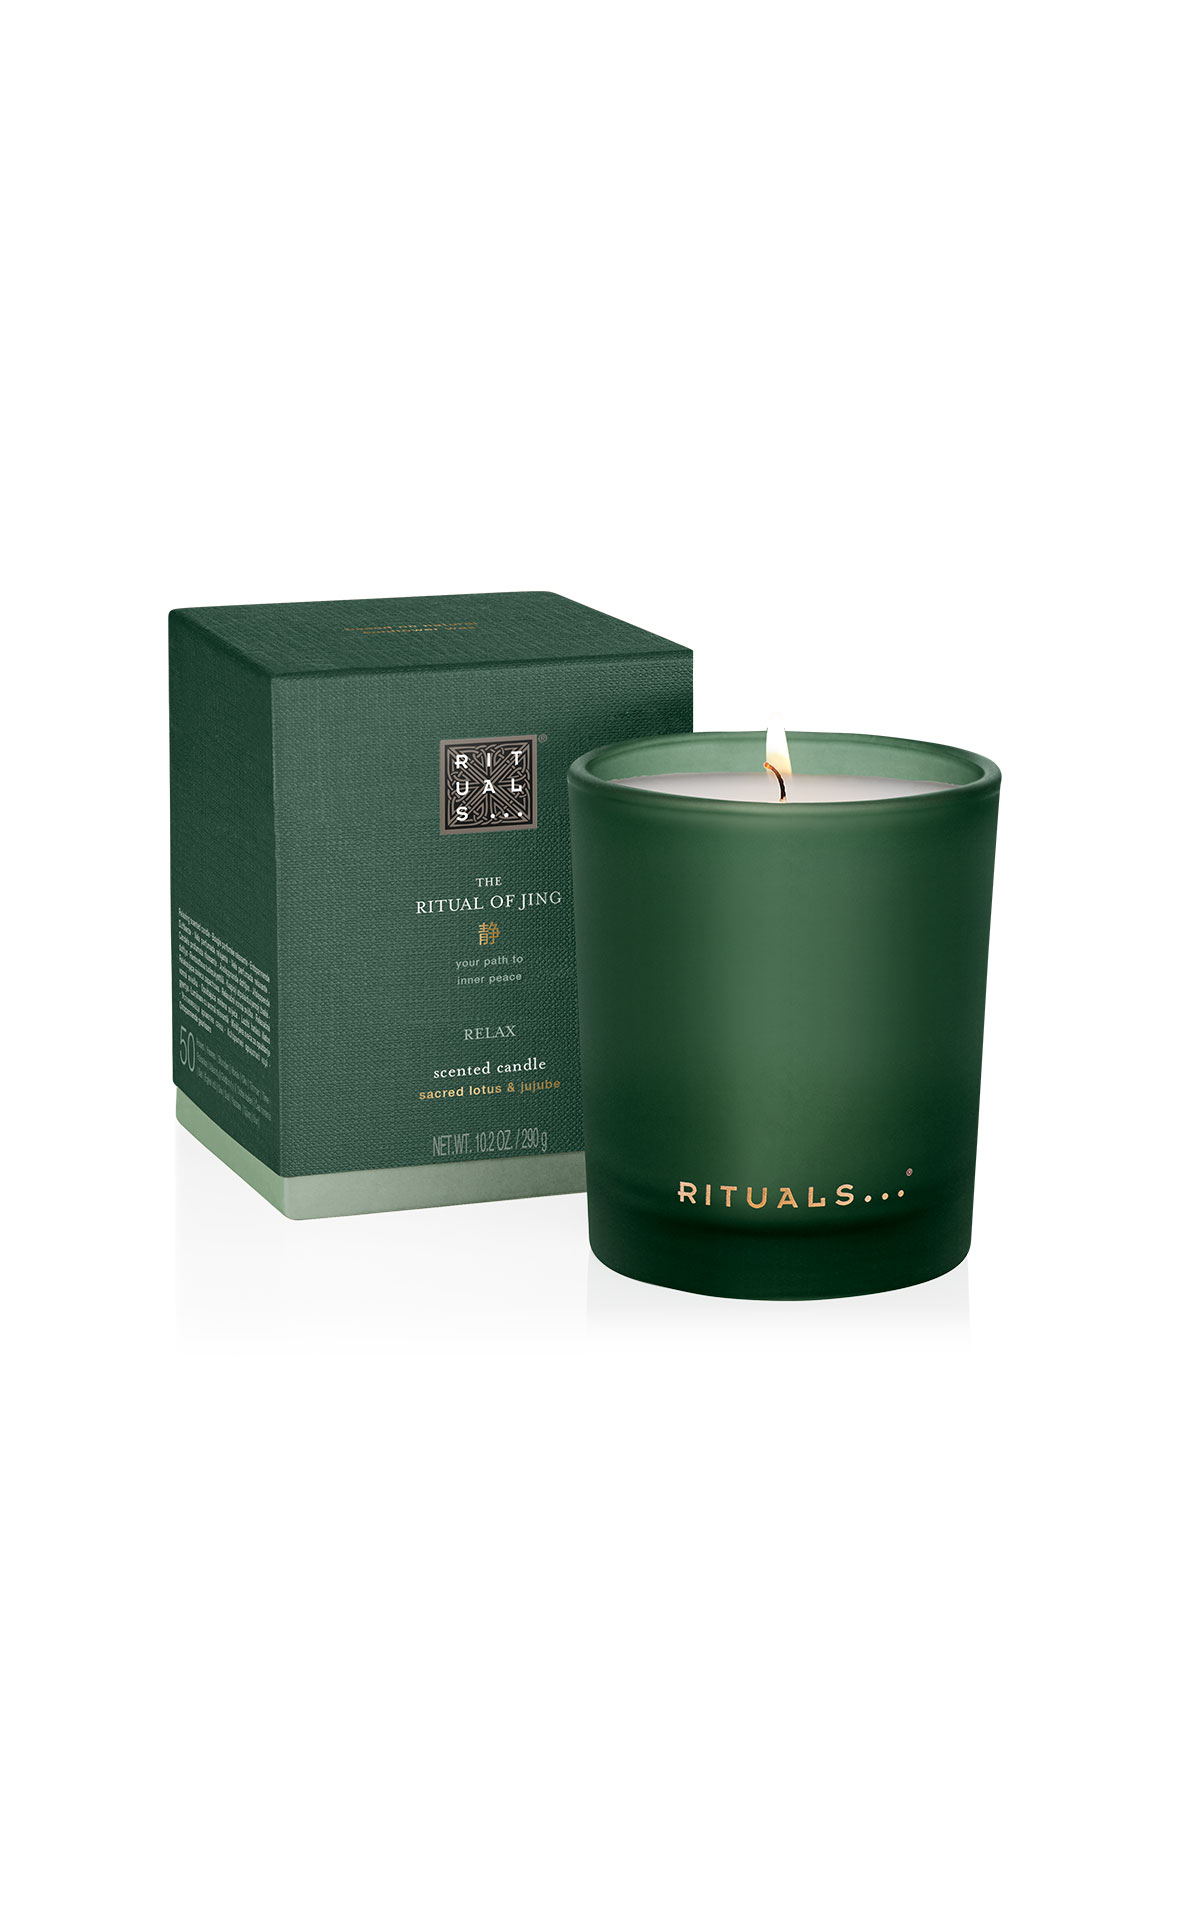 Rituals The ritual of jing scented candle from Bicester Village